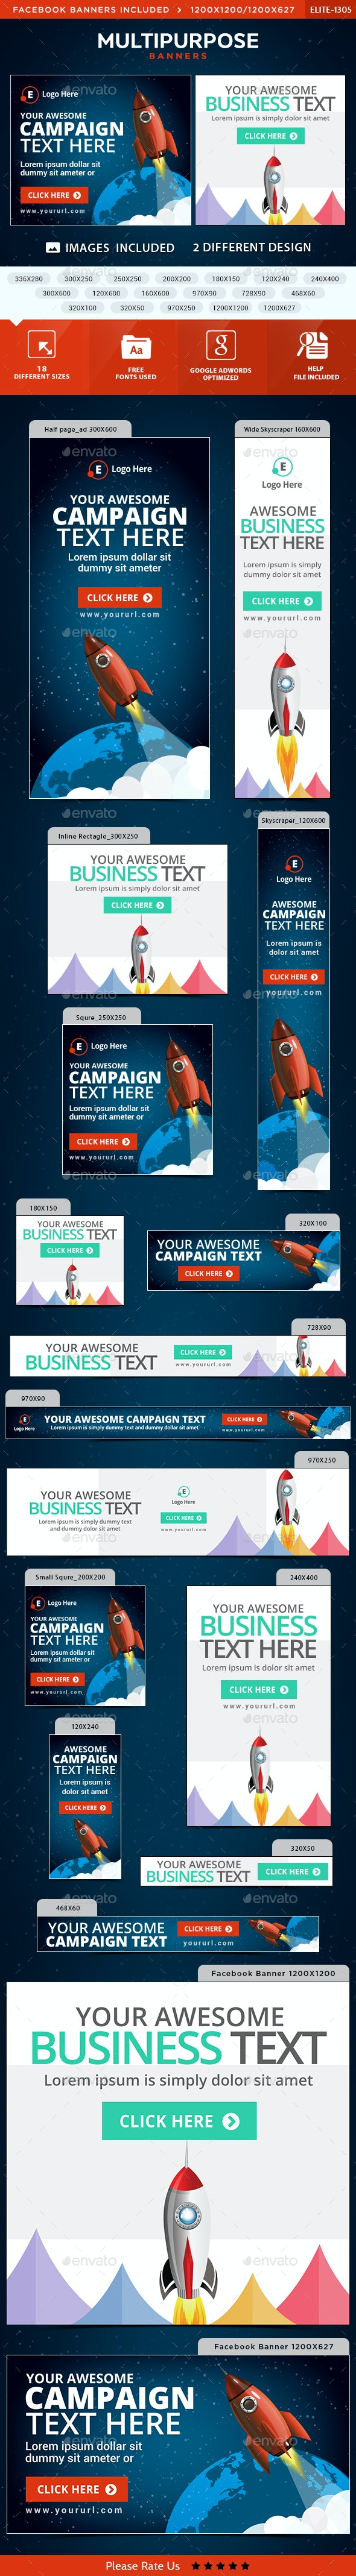 Multipurpose Banners - 2 Designs - Banners & Ads Web Elements